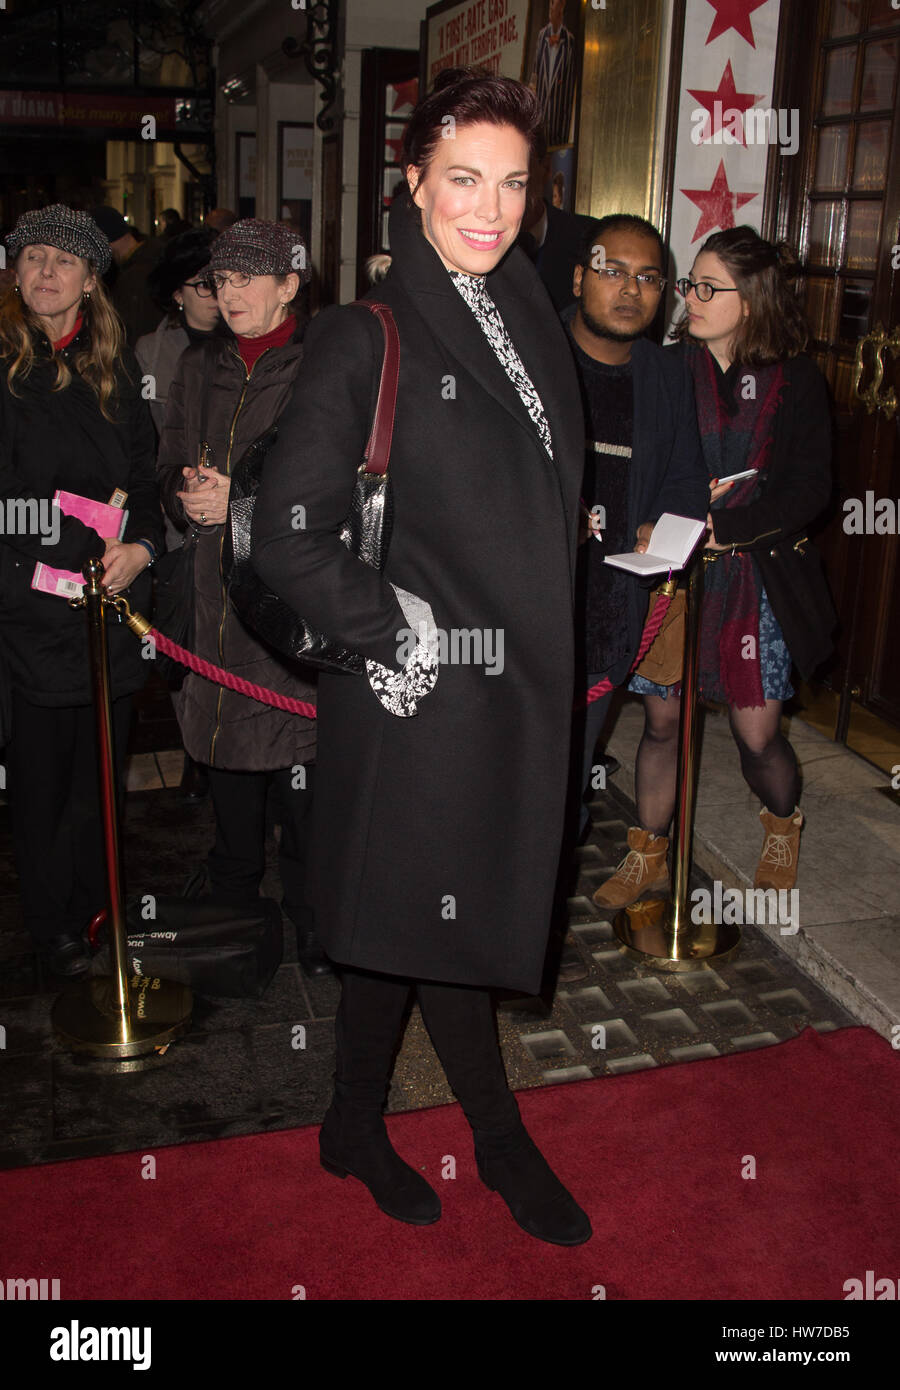 Celebs arriving at the Apollo Theatre for the press night of Tom Stoppard's play Travesties  Featuring: Hannah Waddingham - Stock Image